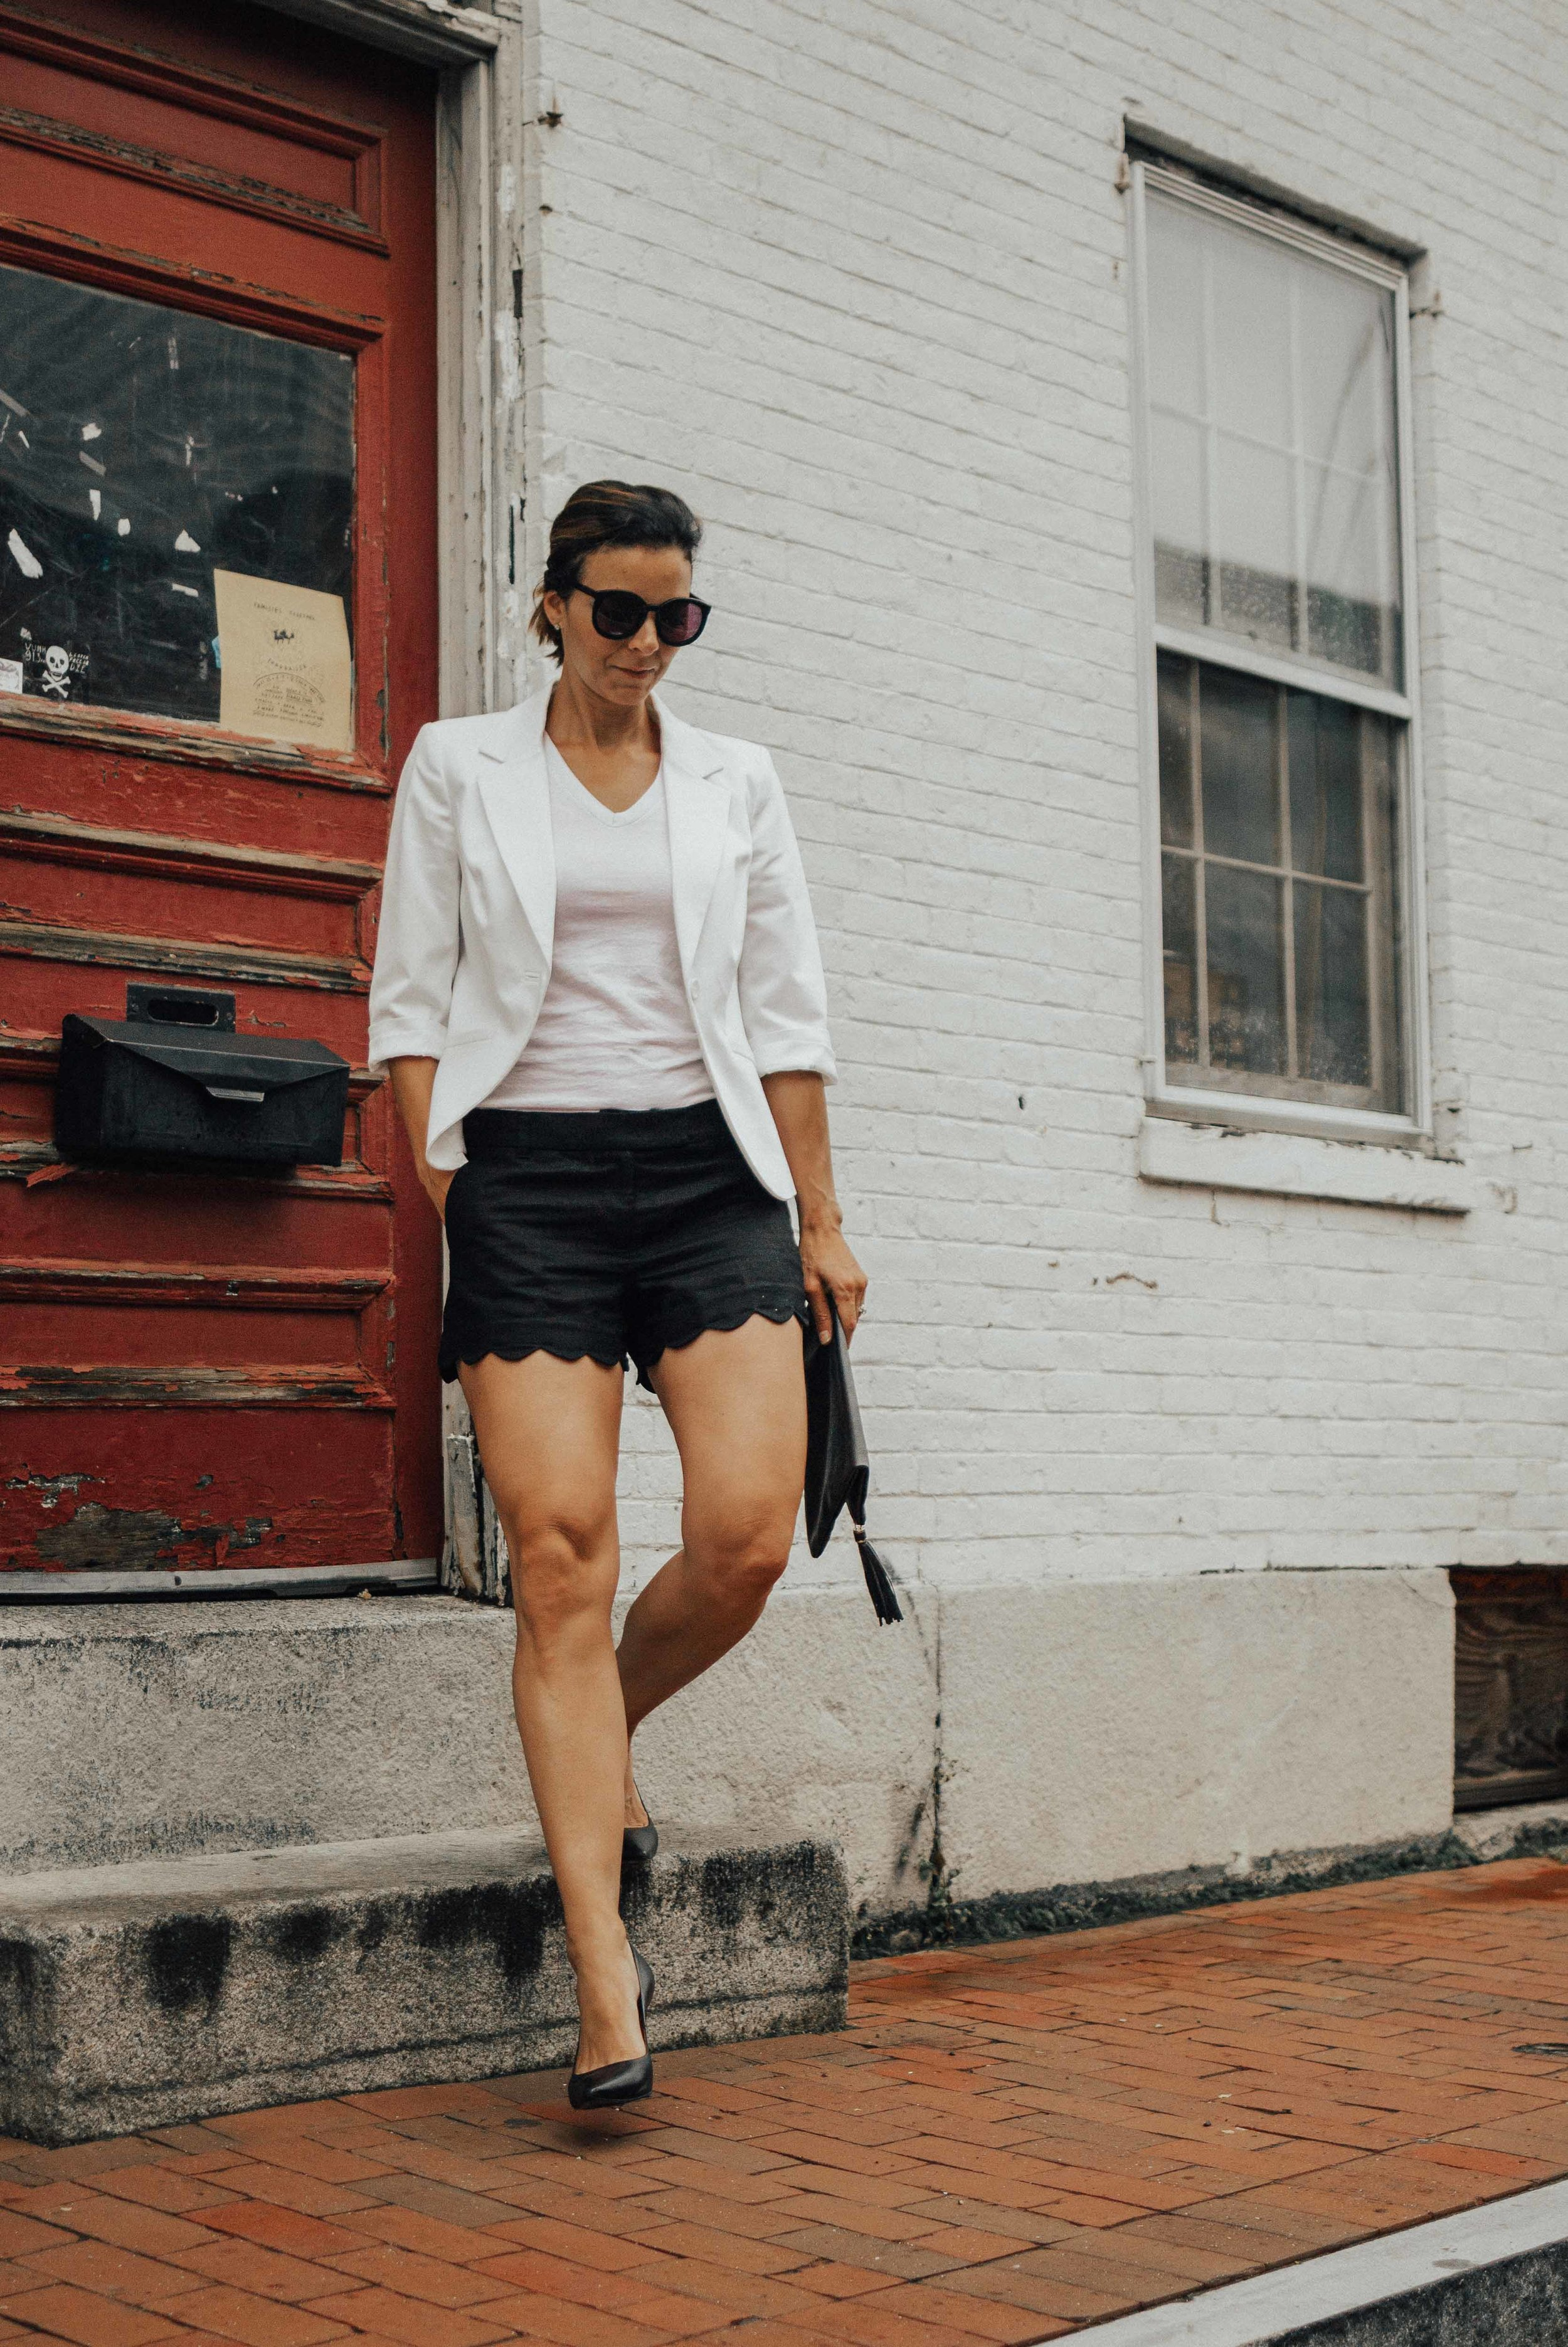 Basic White Tee Outfits – How to Style a Basic White Tee – 10 Ways to Dress Up a Basic White Tee Shirt - Black and White Outfit Ideas – White T-Shirt Outfits – White Tee Outfit Ideas – Summer Outfits – White Tee Outfit Ideas – Dressy White Tee – Summer Style - #whitetee #heartandseam  www.heartandseam.com